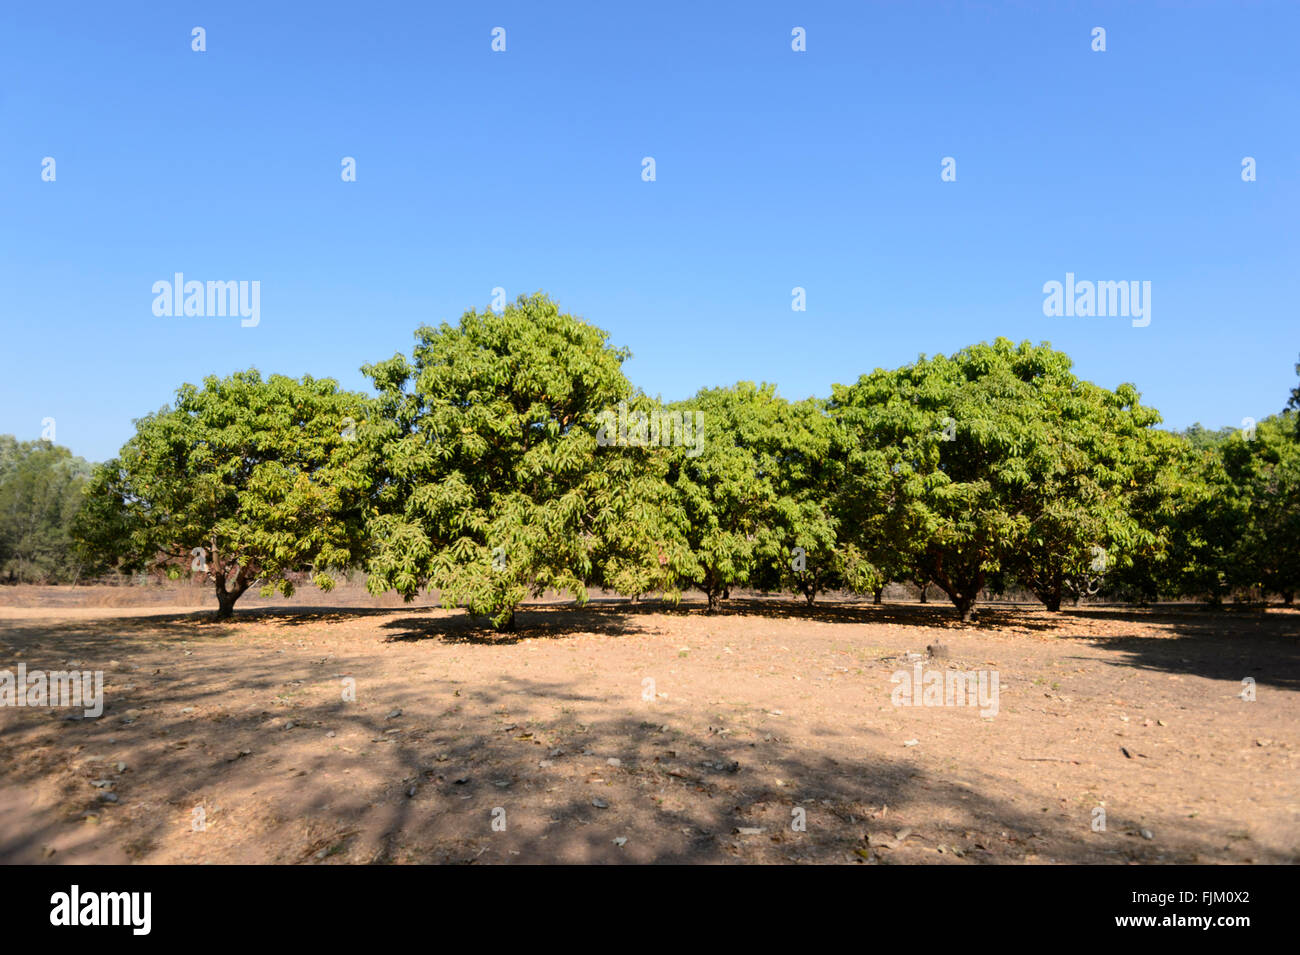 Daly River Mango Farm, Northern Territory, Australia - Stock Image